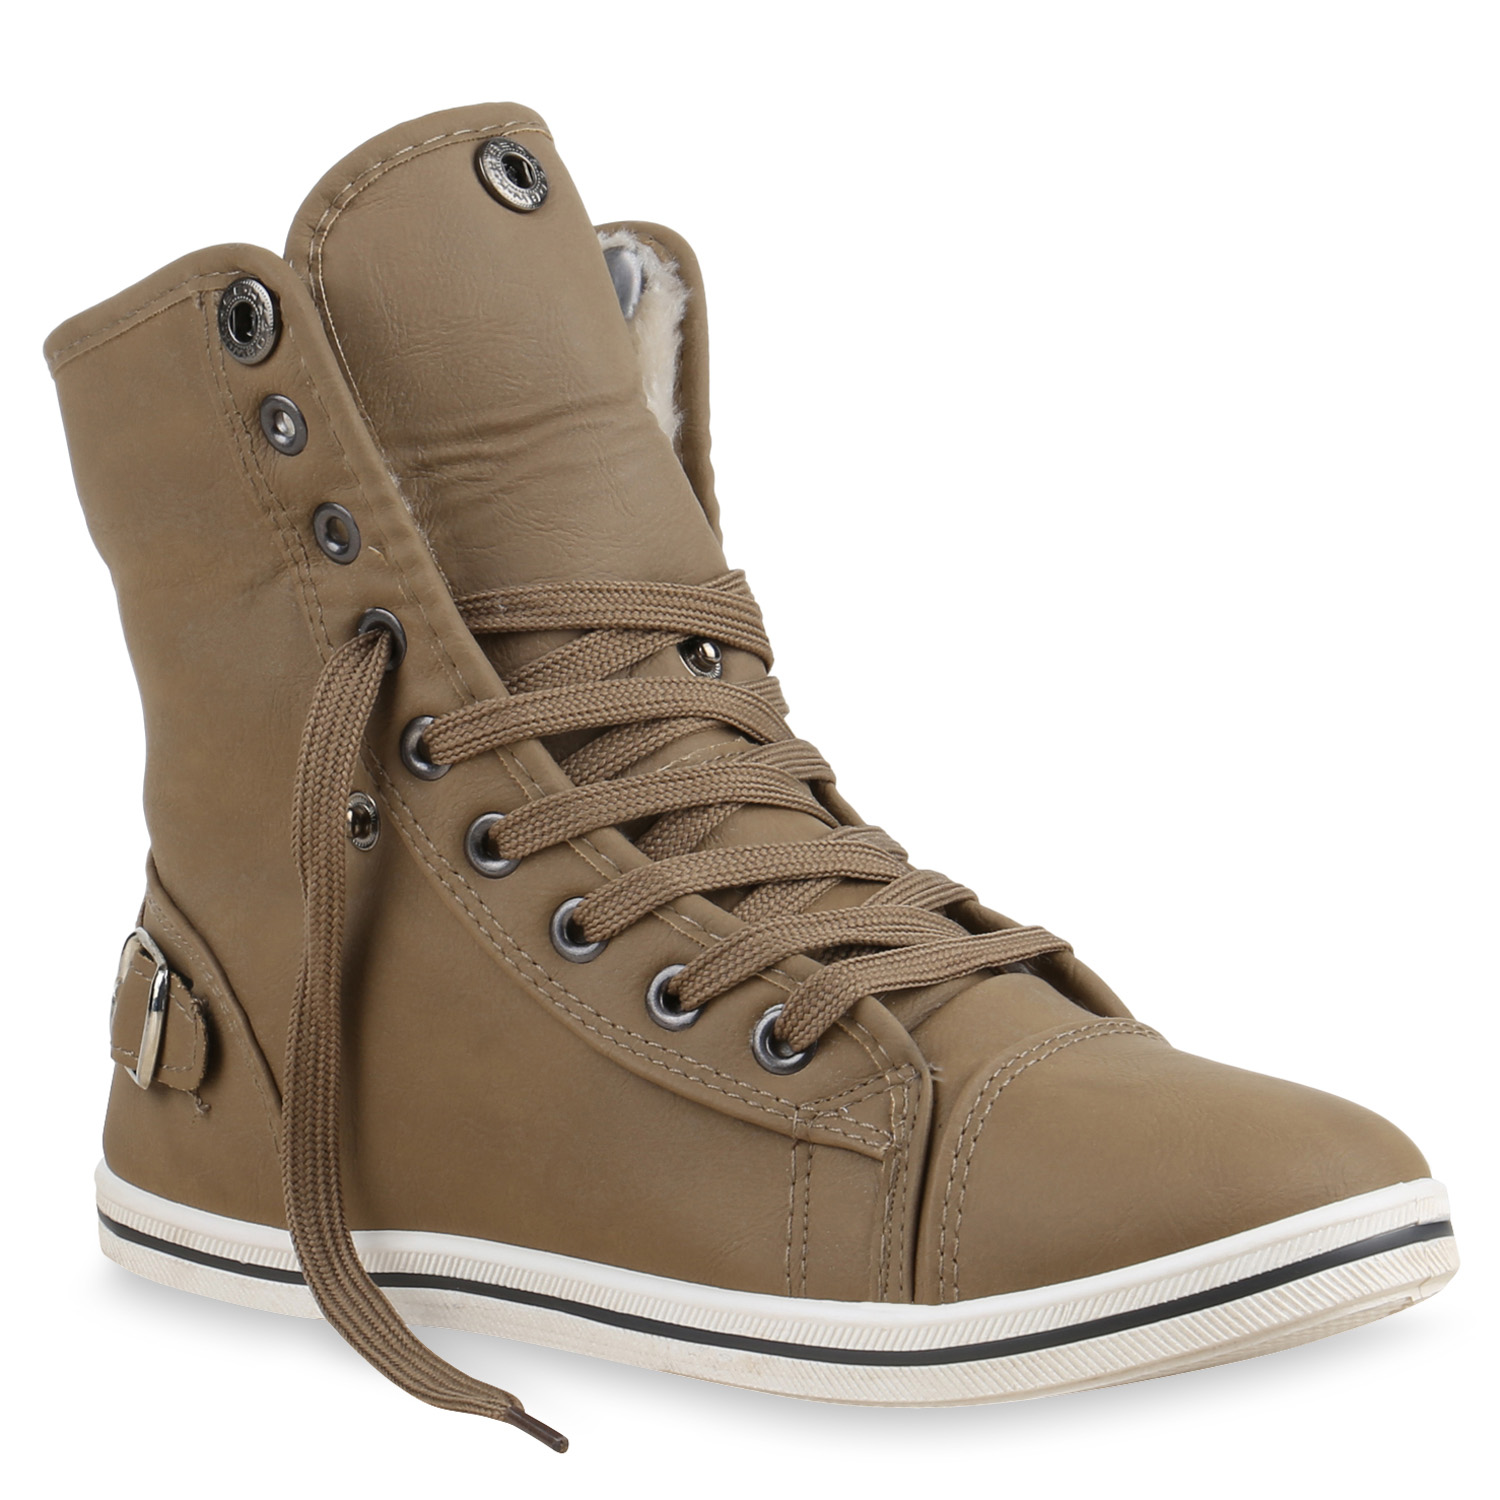 damen sneakers stoffschuhe sneaker boots 71280 sportschuhe gr 36 41 ebay. Black Bedroom Furniture Sets. Home Design Ideas